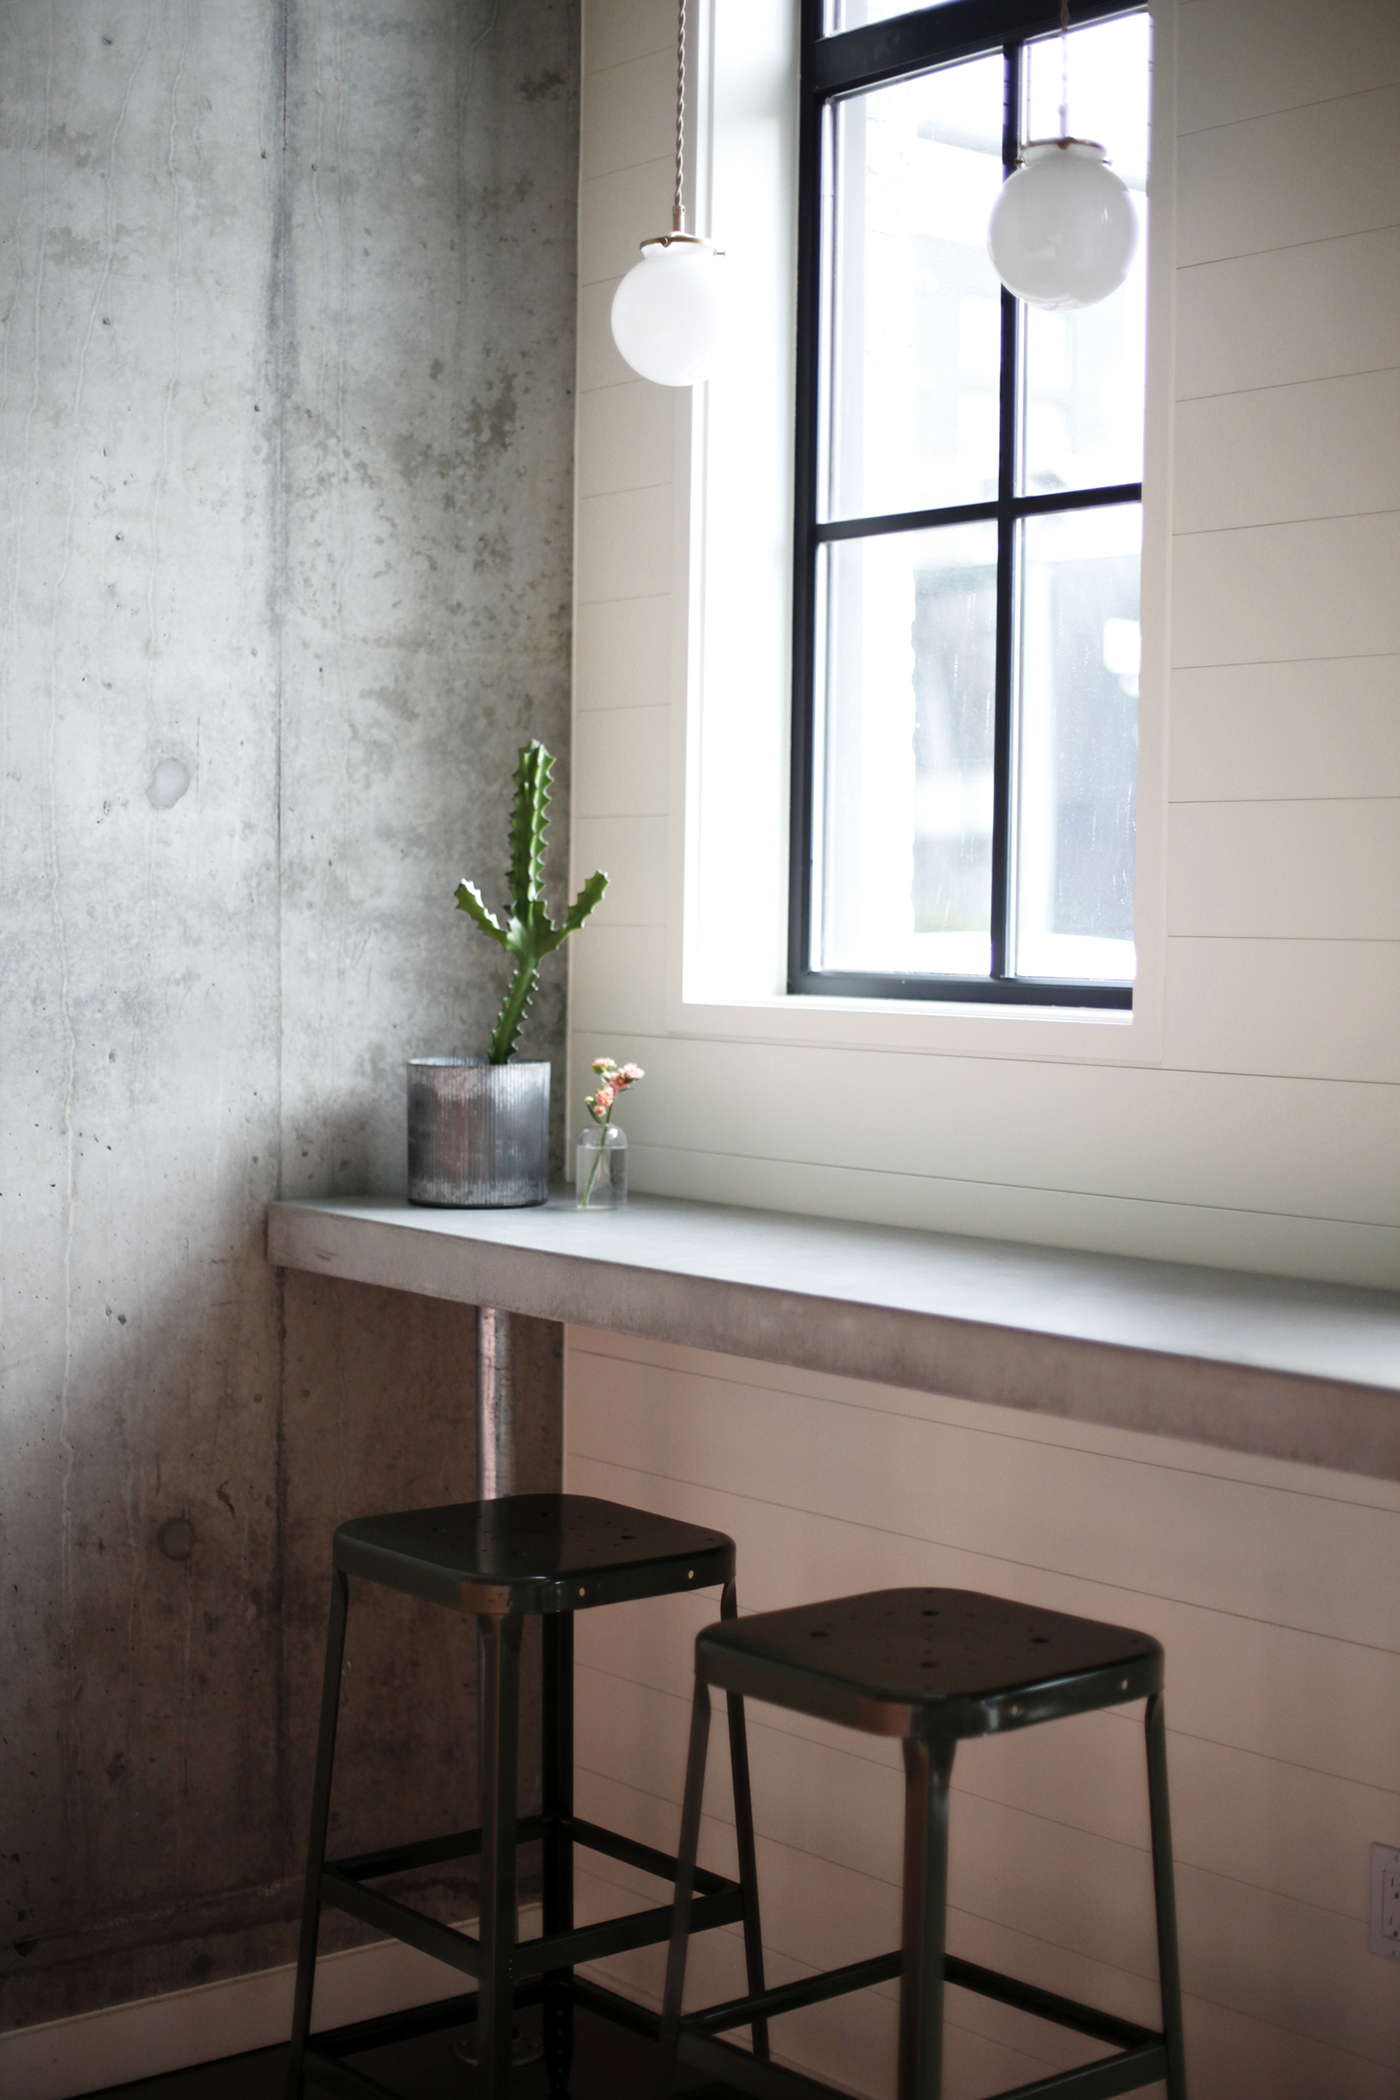 AN IDEAL BACKDROP - Katie's team applied wood panels from floor to ceiling and cased around each of the windows and doors.They decided to work with the existing concrete retaining wall, as it was an ideal backdrop and contrast to the brass framed mirror, and installed concrete counters and floors to play up the bright scoops of Frankie & Jo's ice cream.